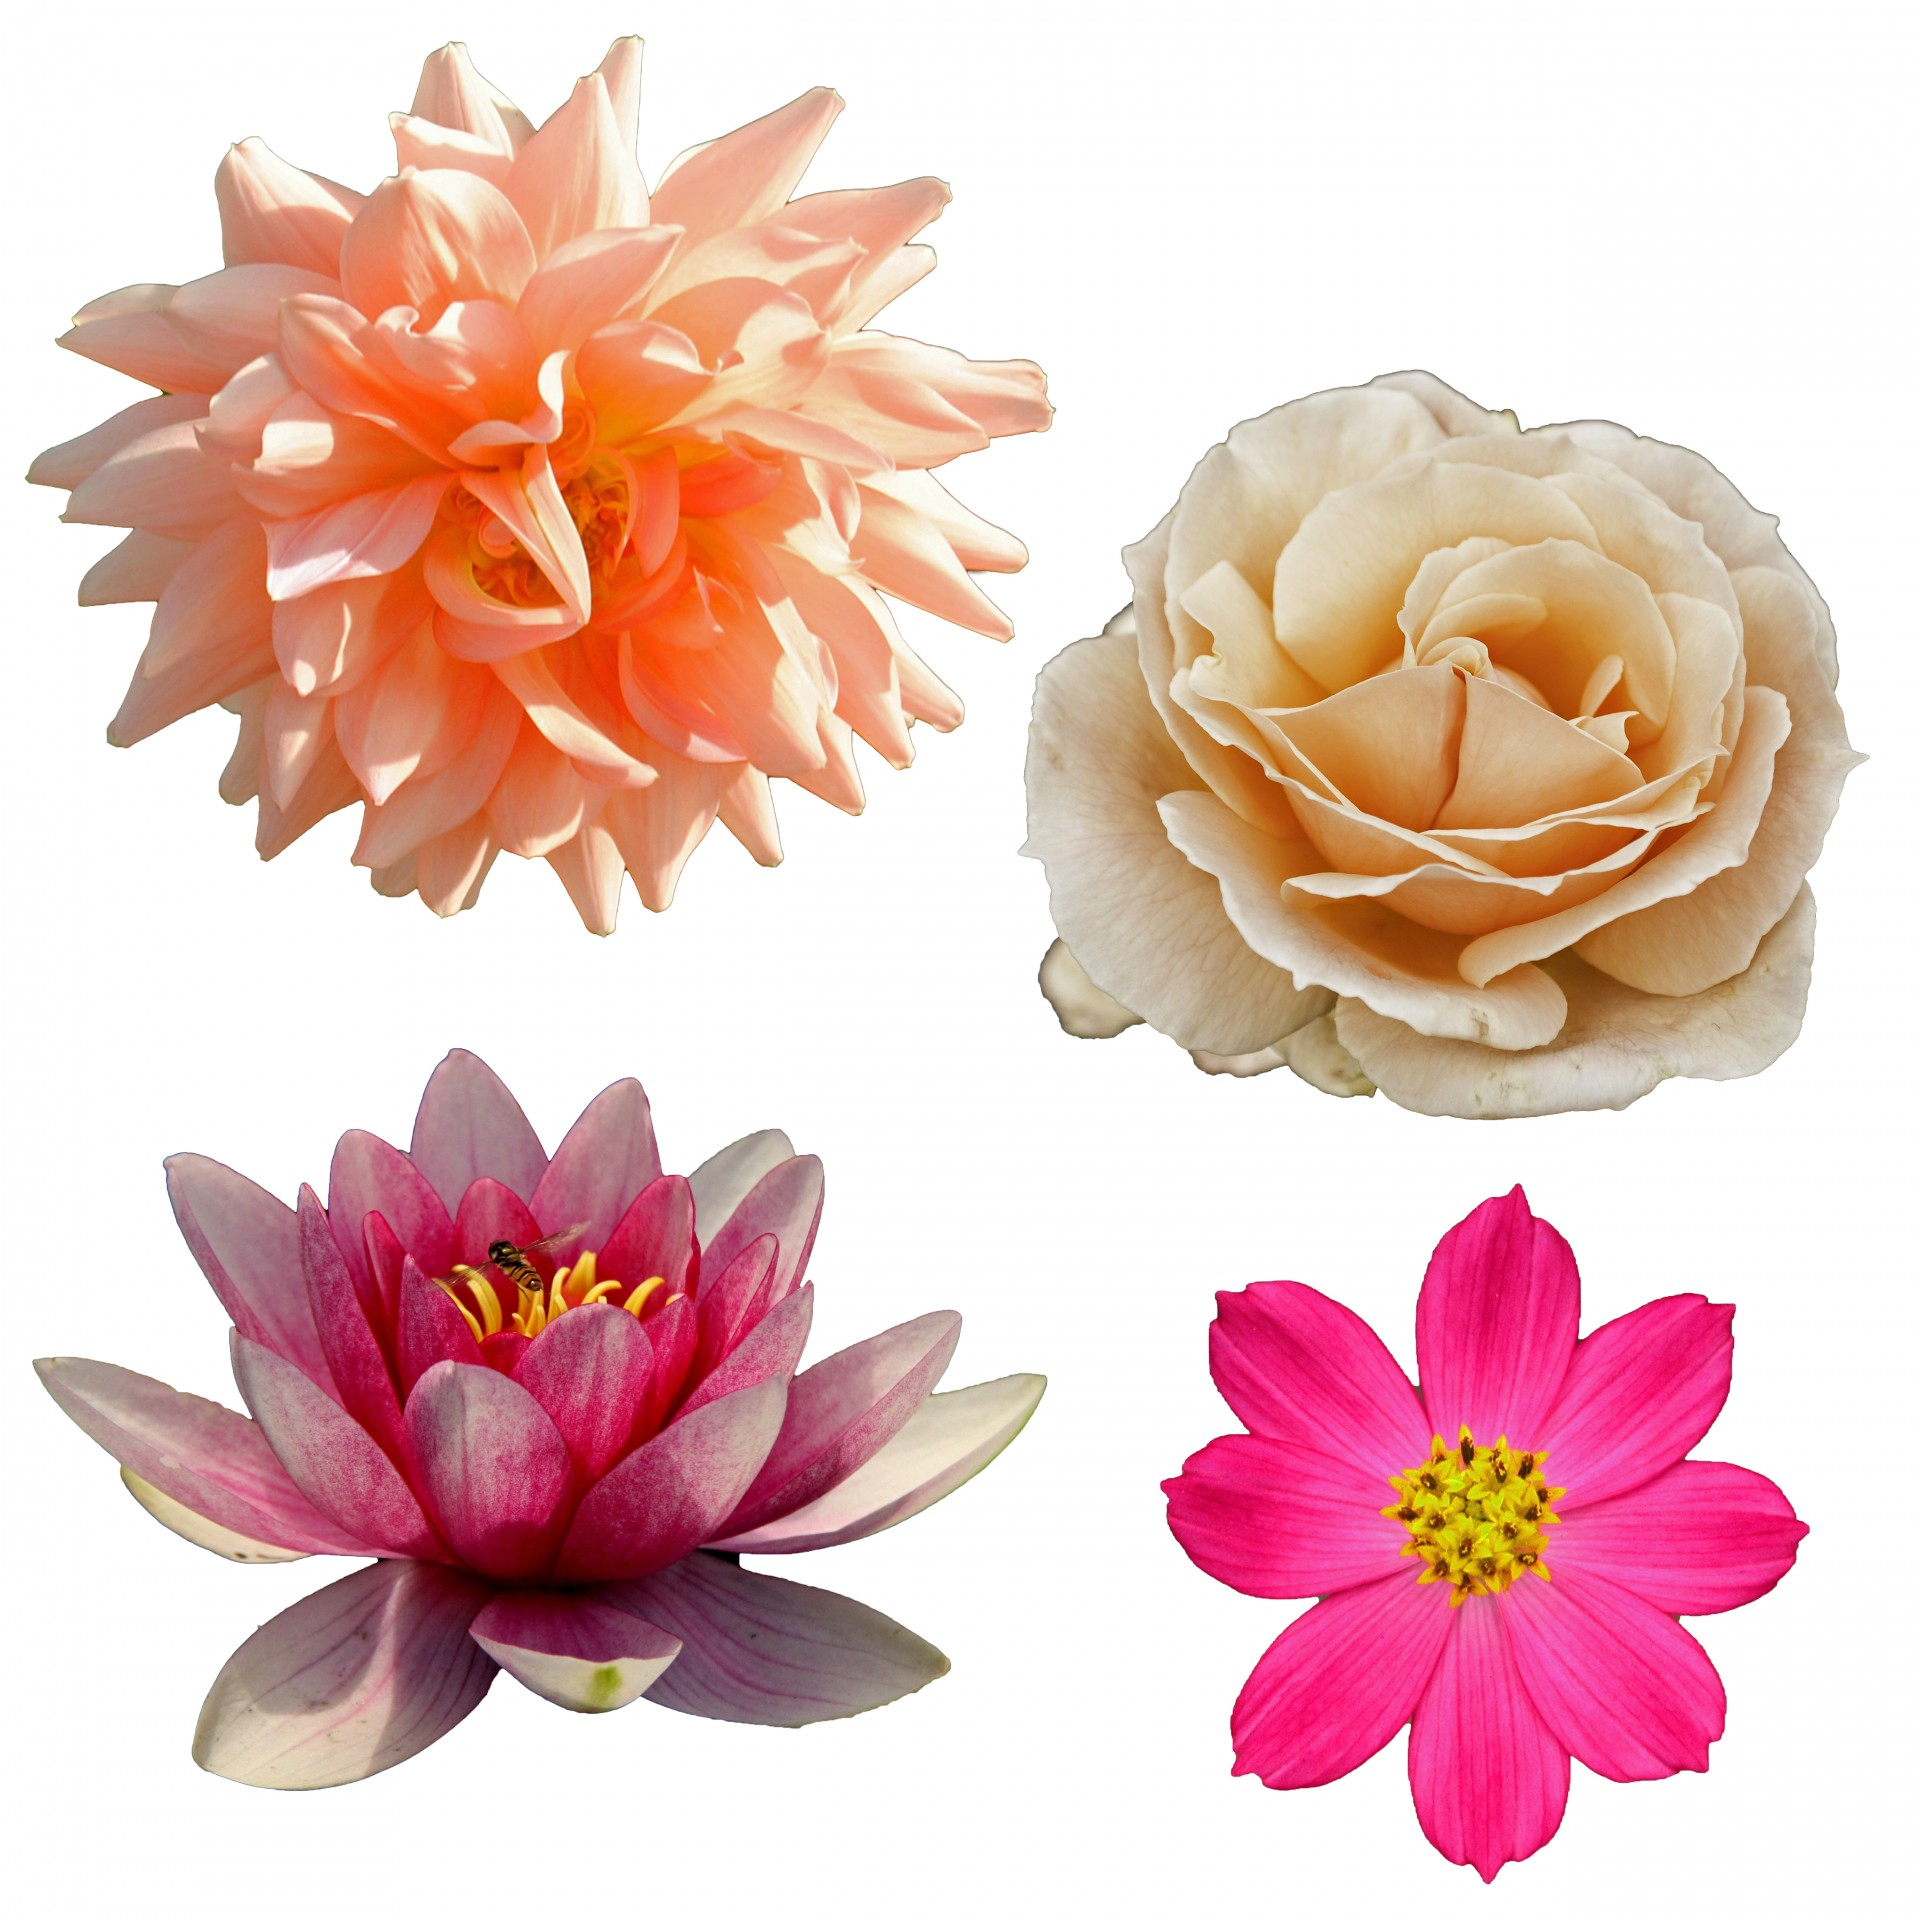 Isolated Flower Clipart Free Stock Photo - Public Domain Pictures